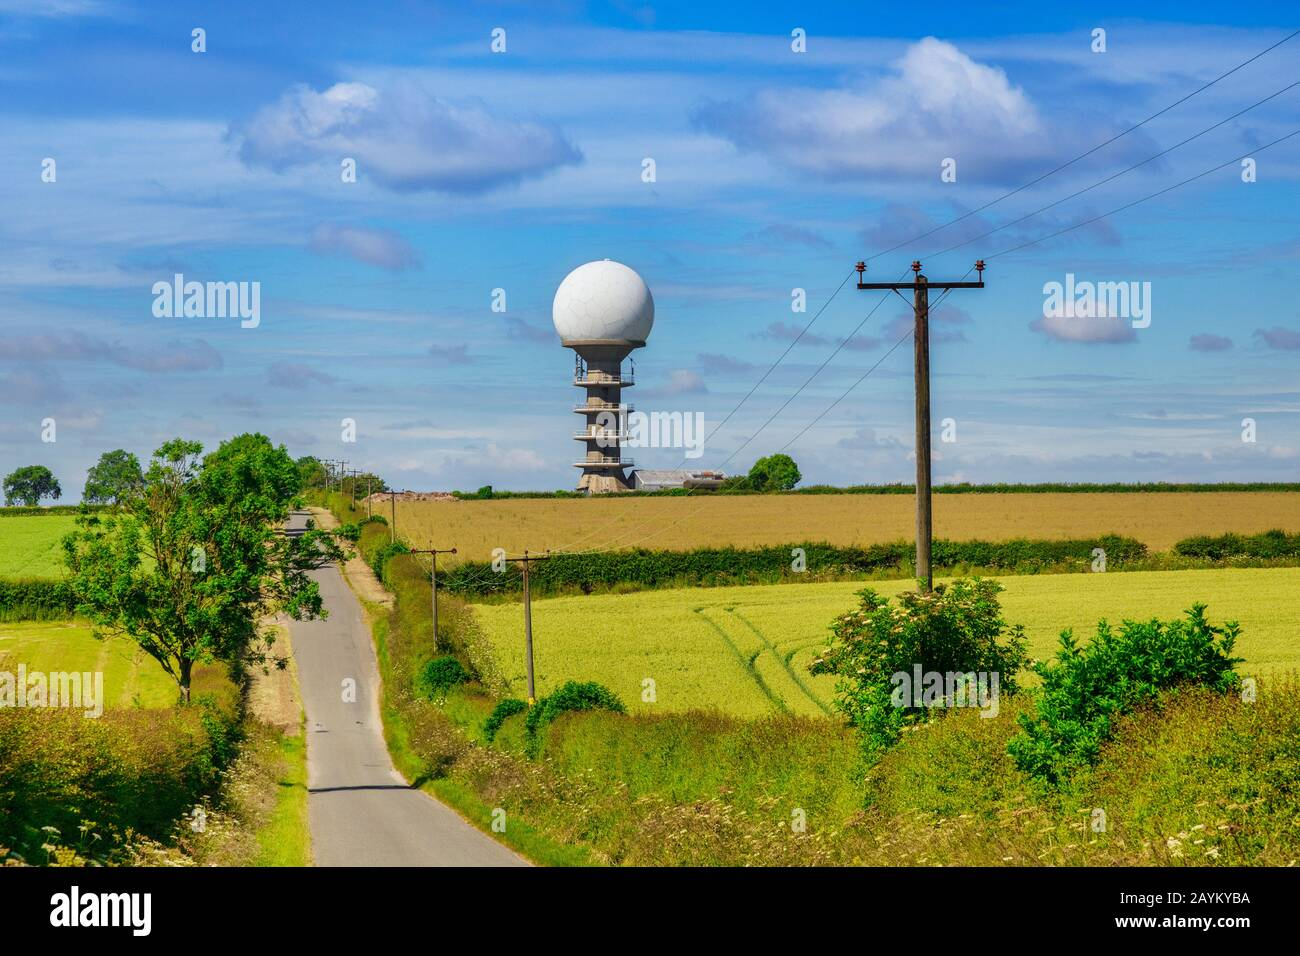 5 July 2019: Normanby Le Wolds Lincolnshire, UK - Claxby National Air Traffic Services(NATS) in the Lincolnshire countryside. Stock Photo